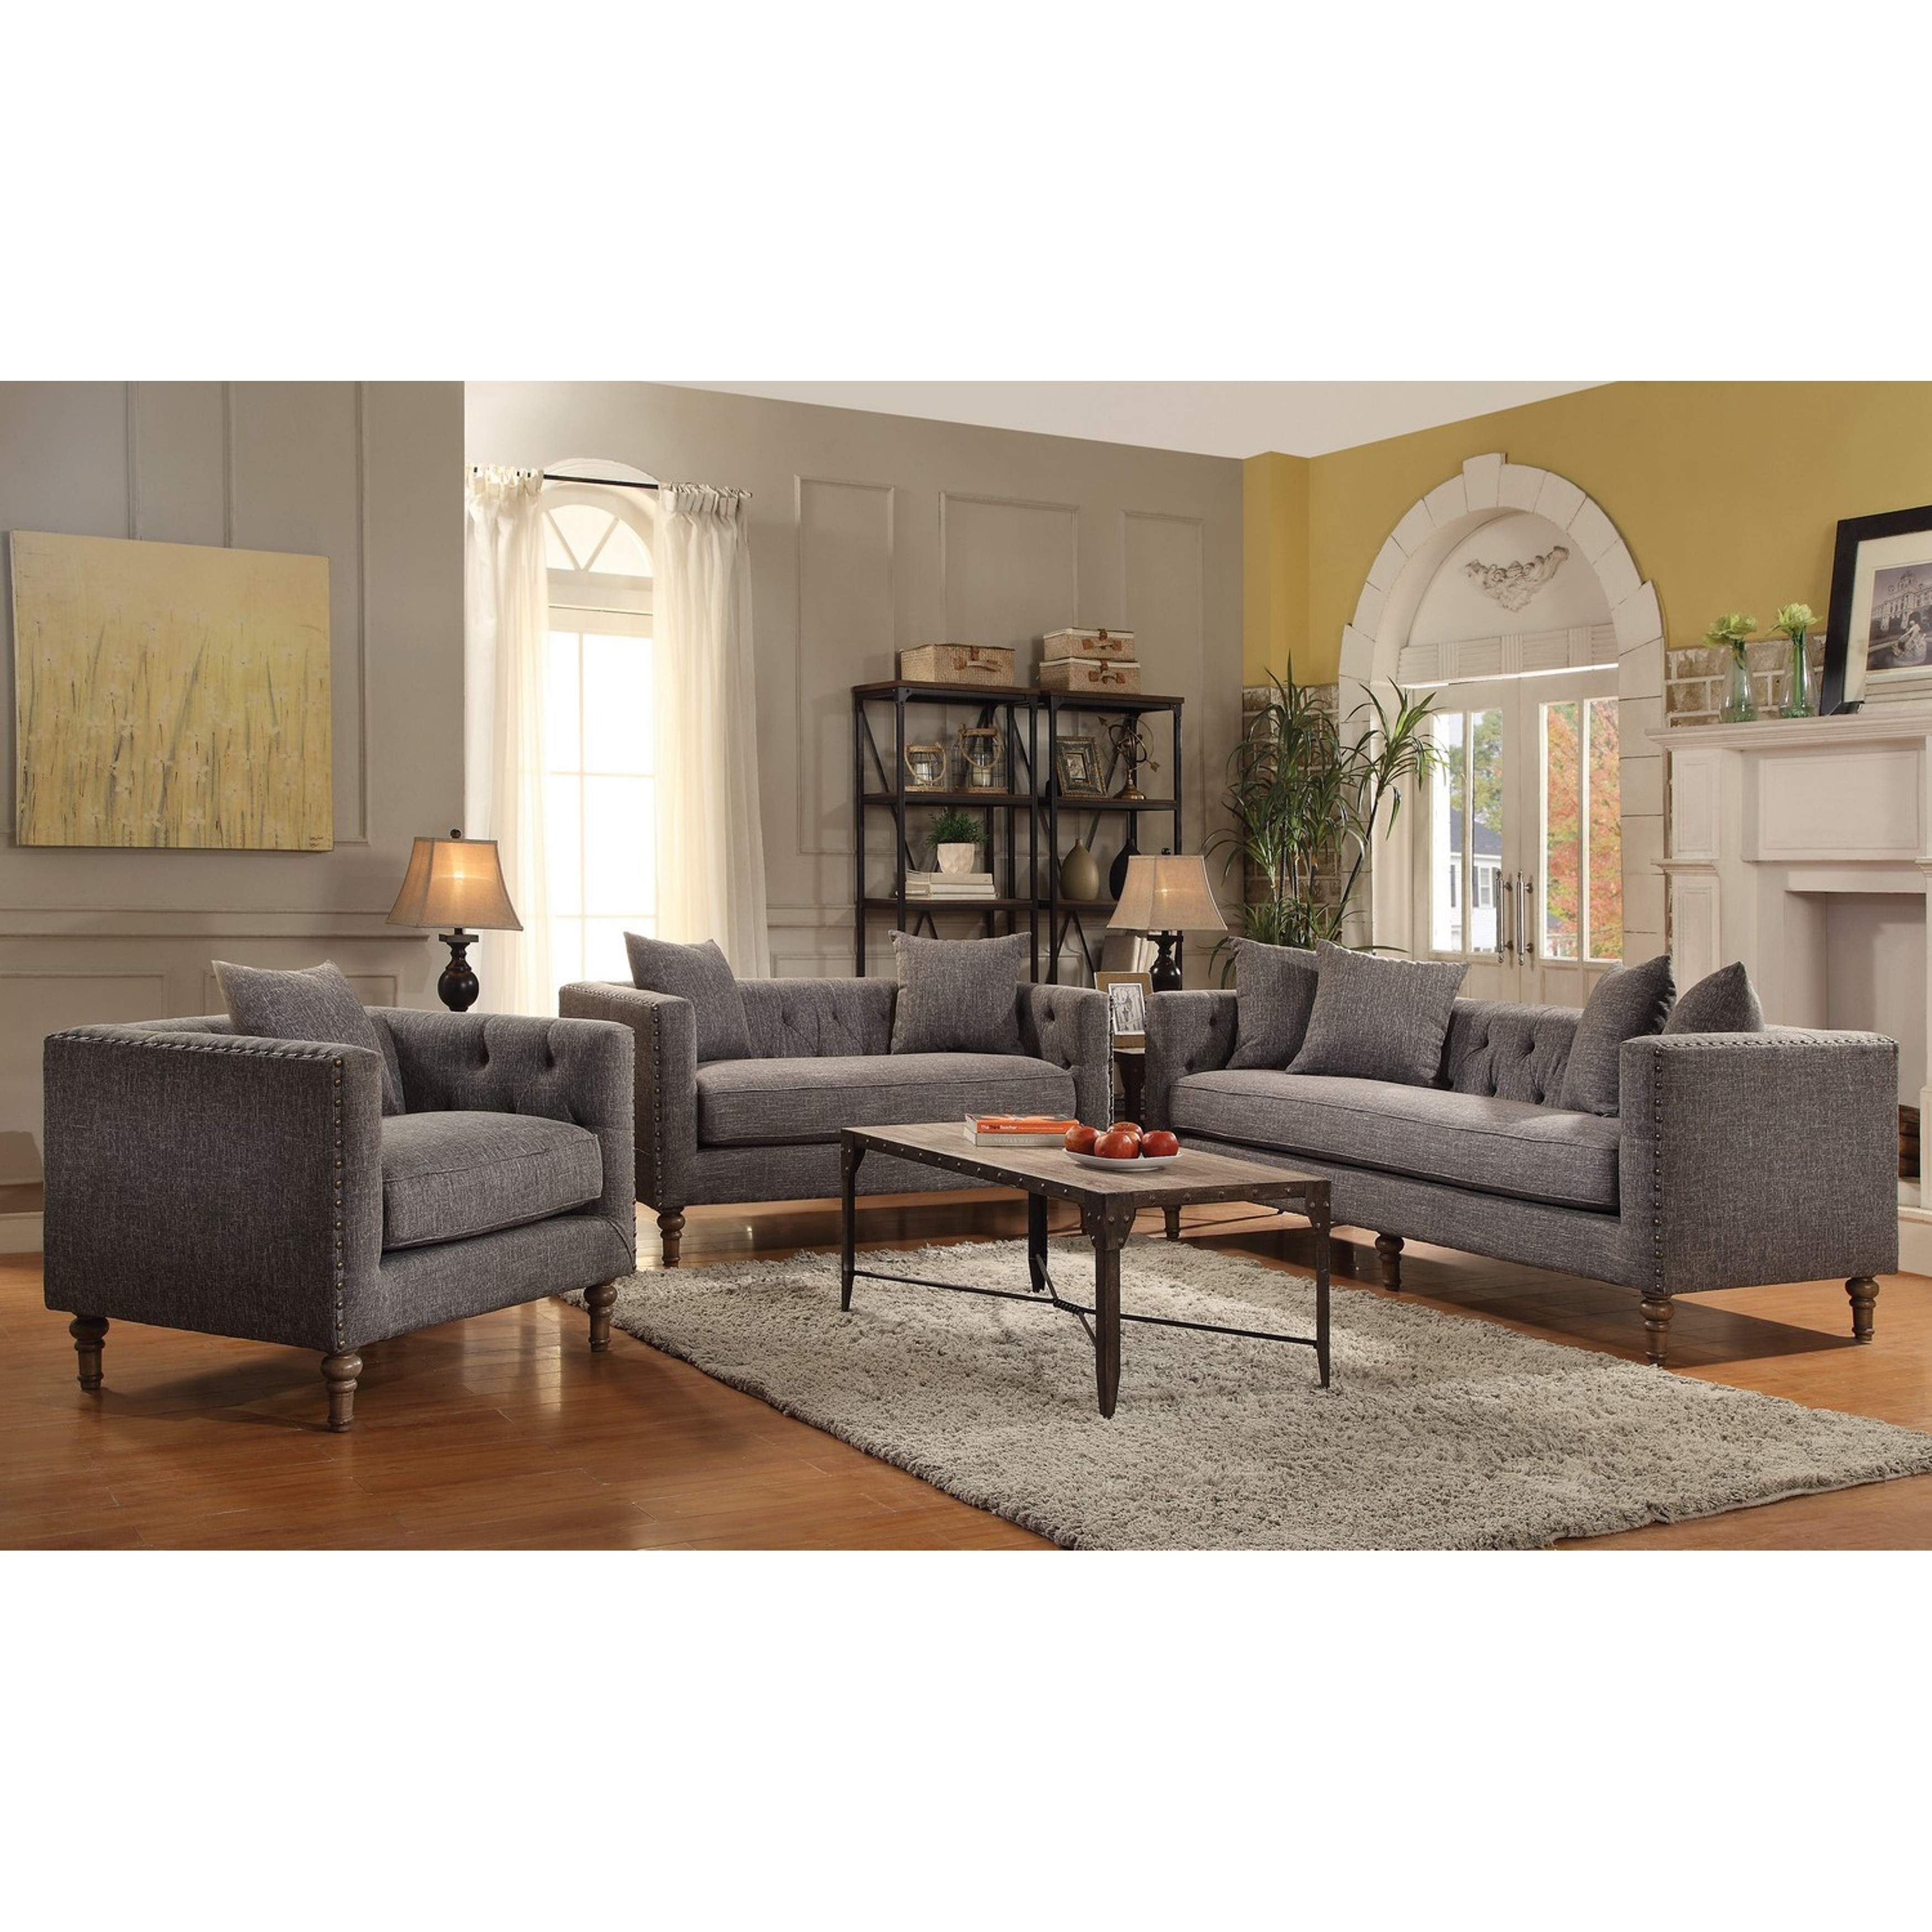 modern living room couches western curtains shop exquisite traditional tufted tuxedo back design sofa collection